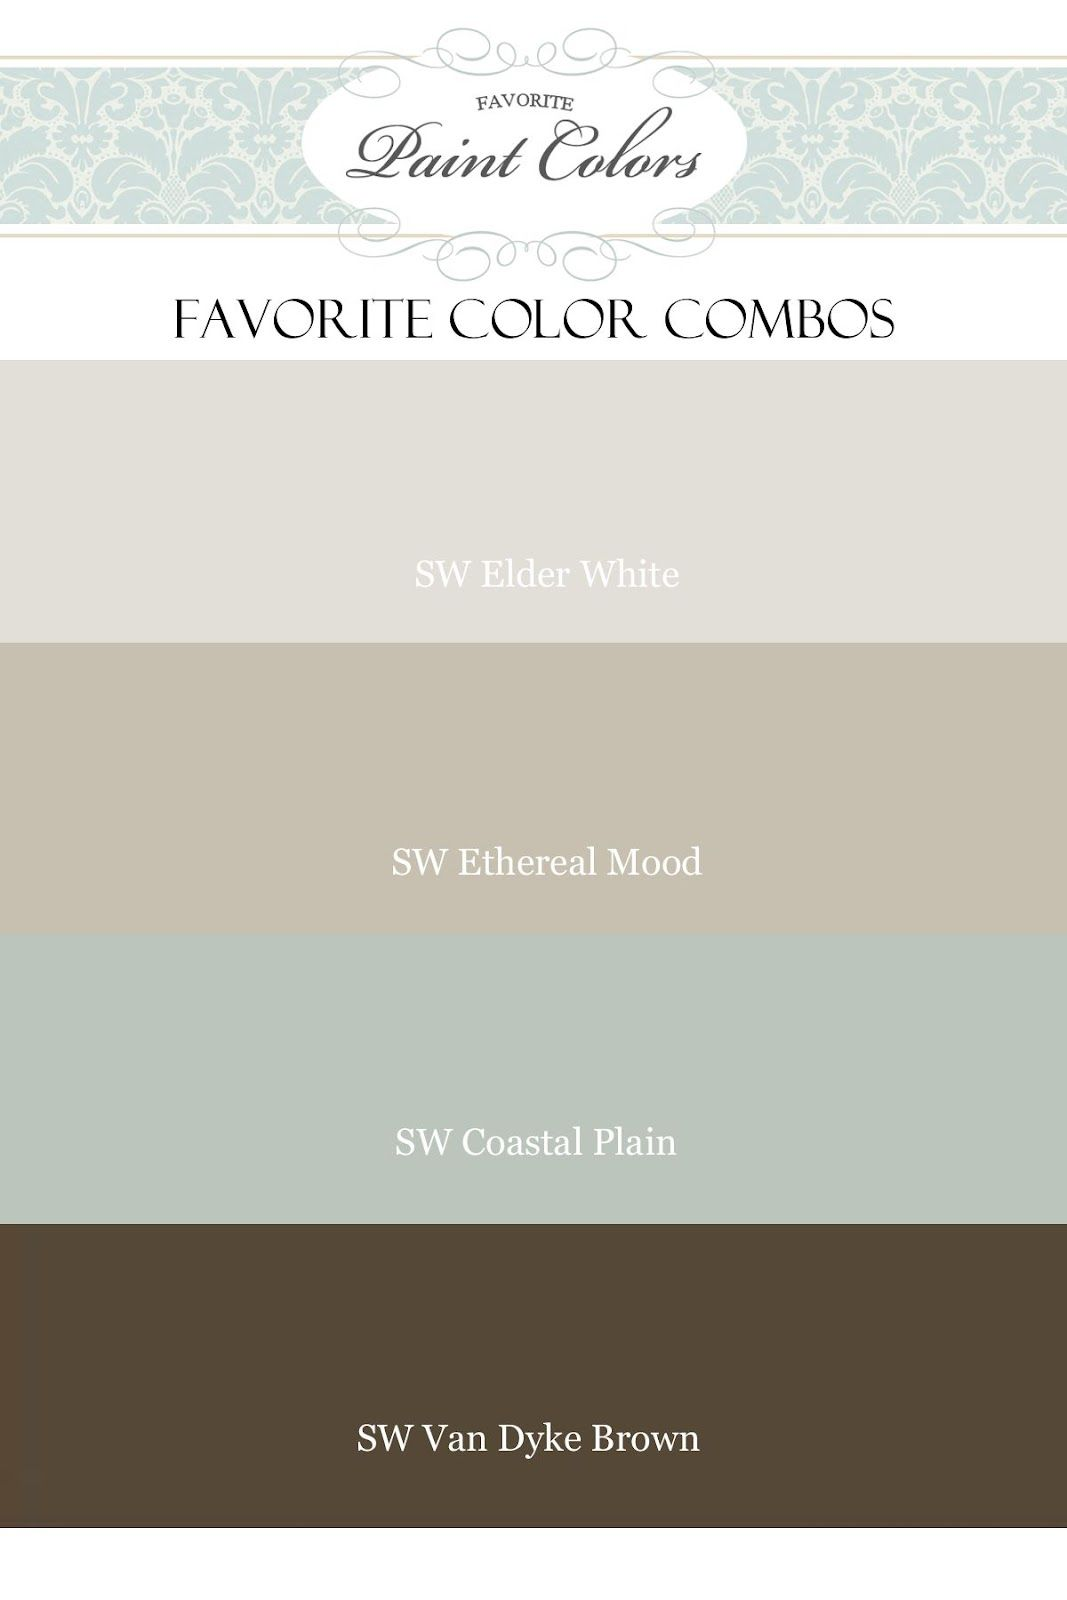 Paint colors website - Website With Good Paint Color Combos Lots Of Benjamin Moore Paint Colors And Room Ideas